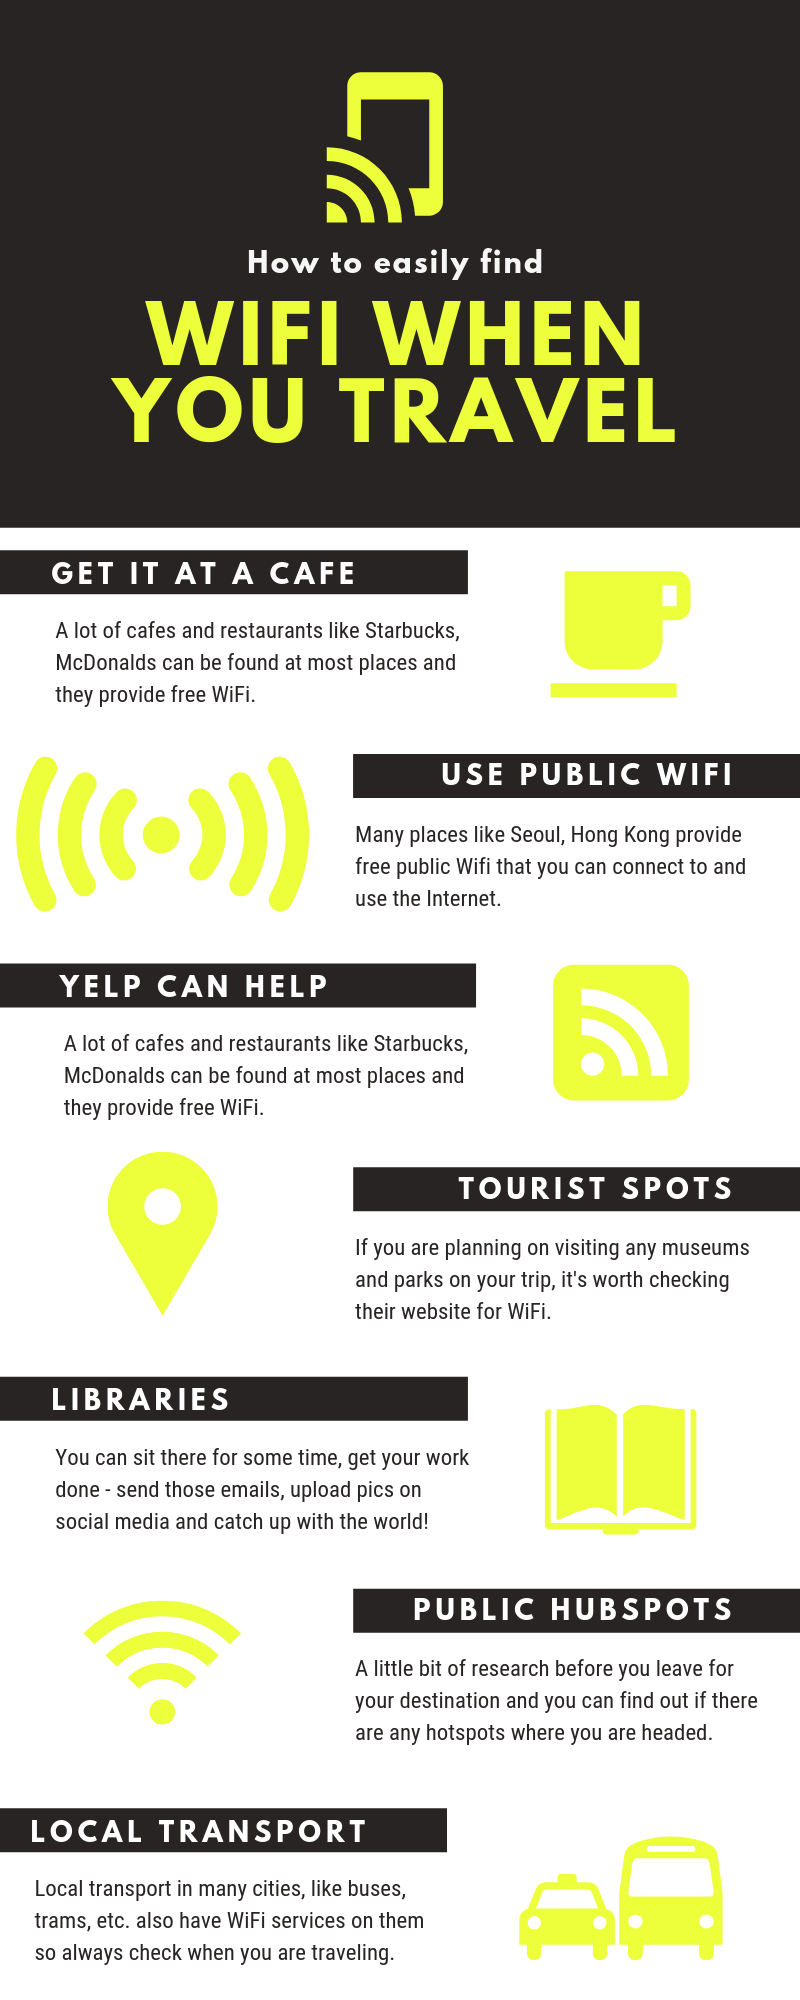 How to easily find WiFi when you travel Travel tips